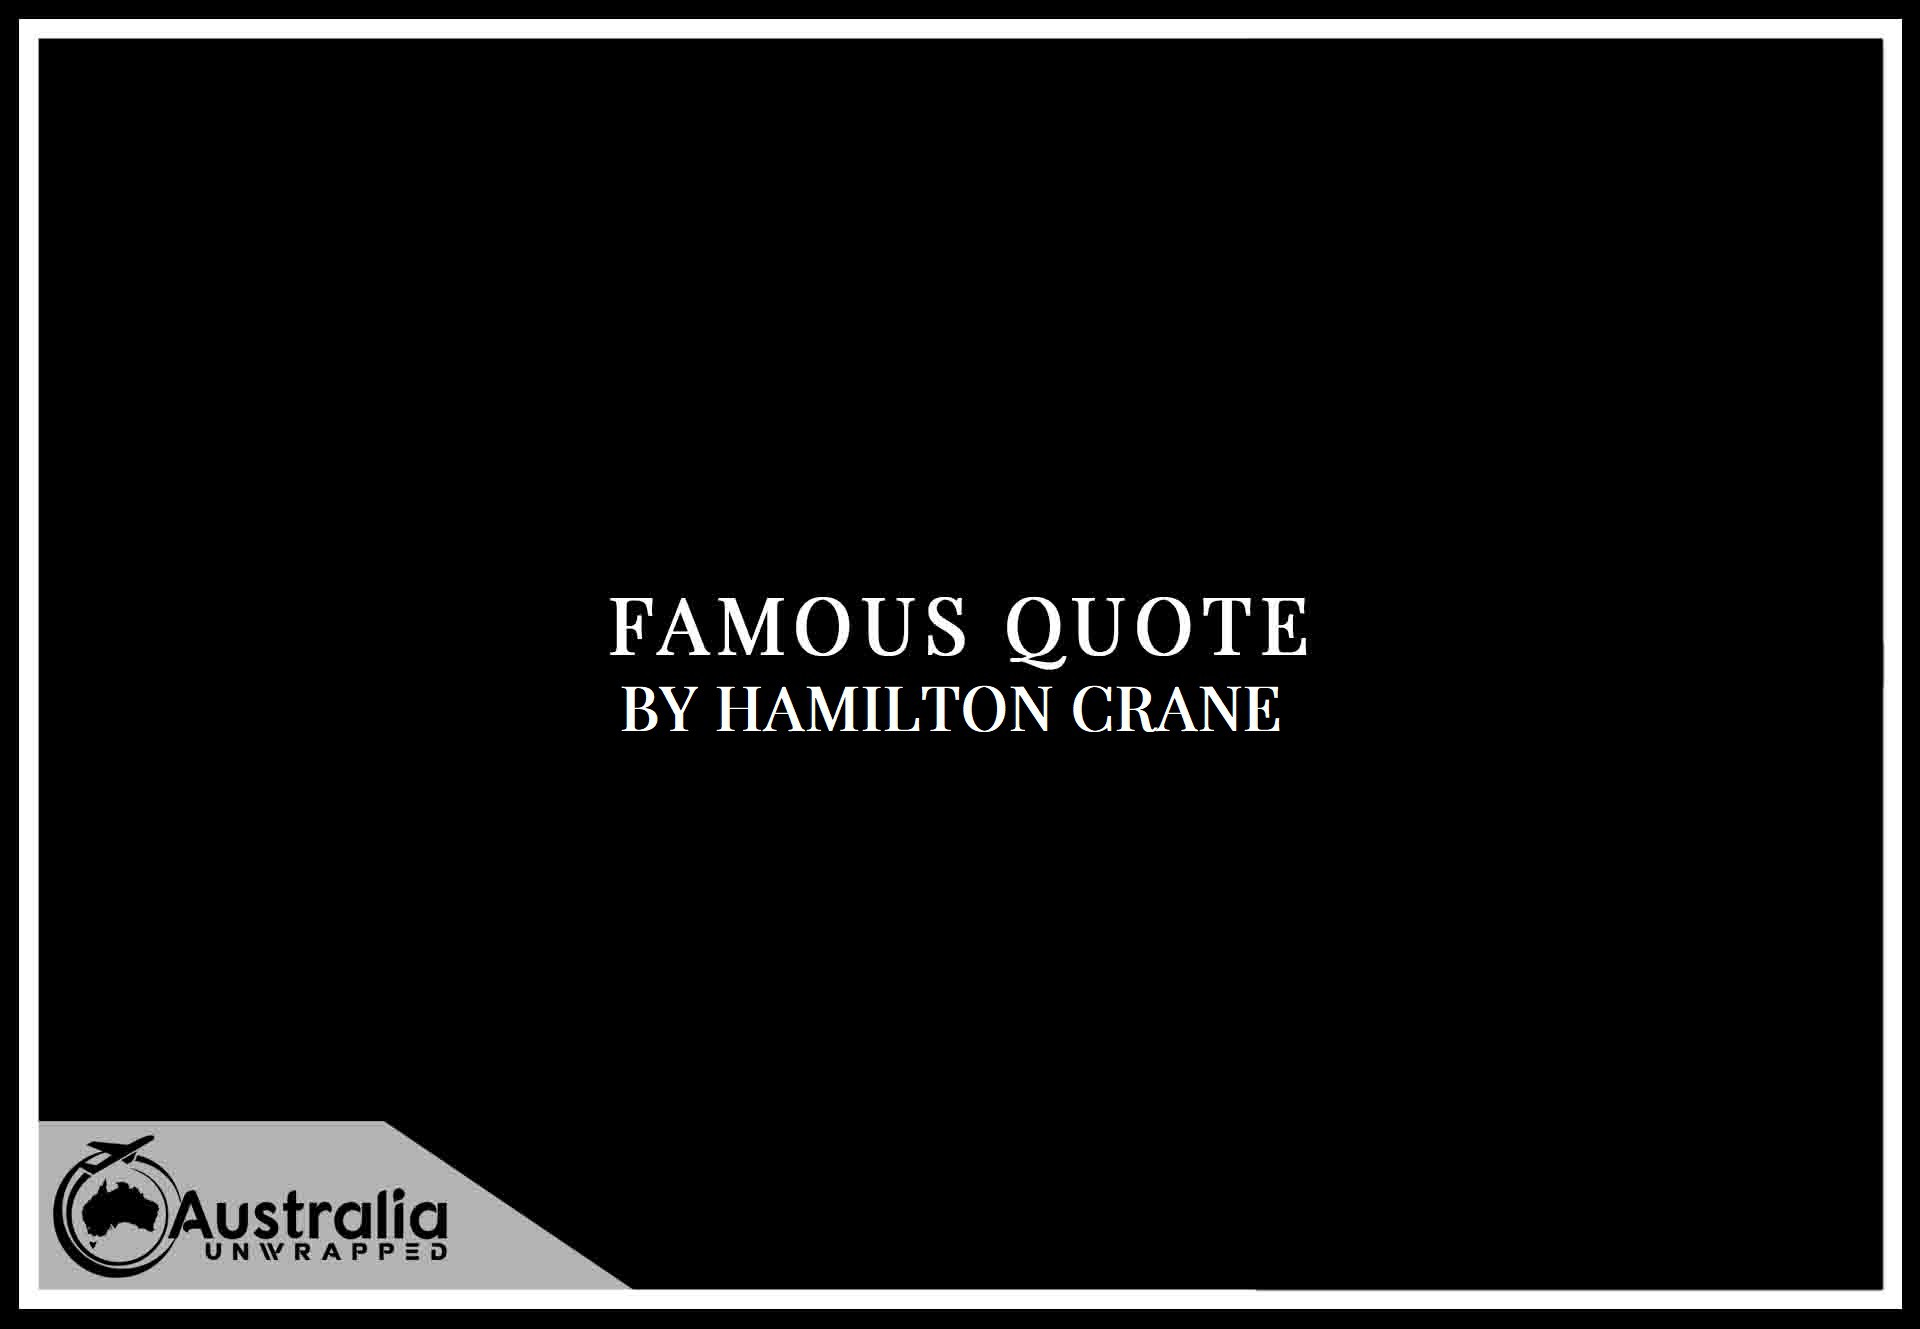 Top 1 Famous Quotes by Author Hamilton Crane